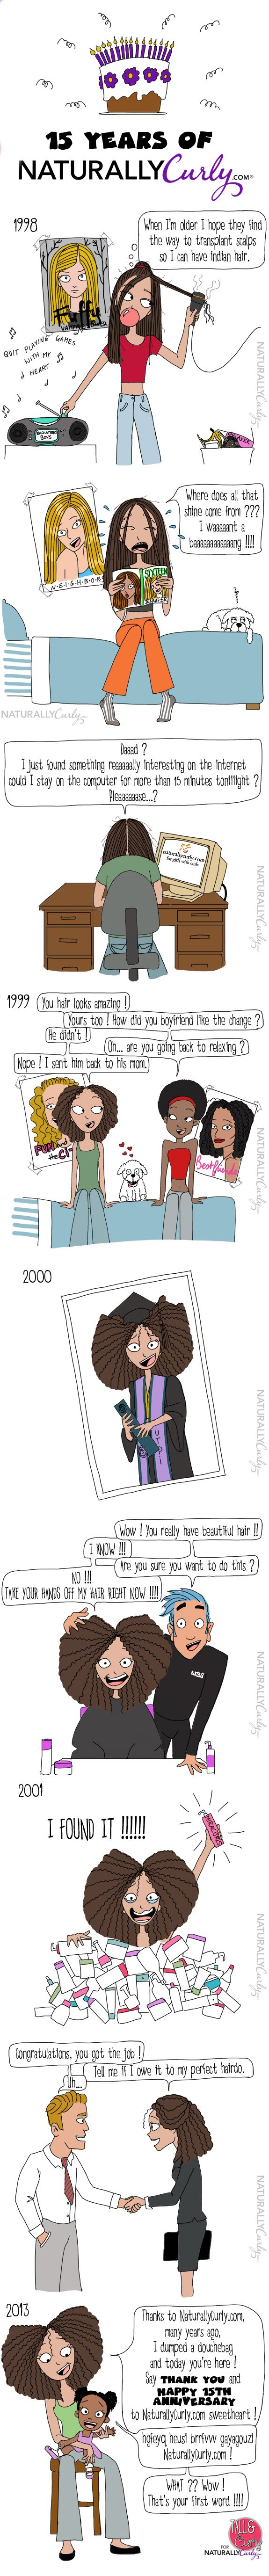 15 Years of NaturallyCurly | COMIC Thanks Terry Martinez N Curly for illustrating how…